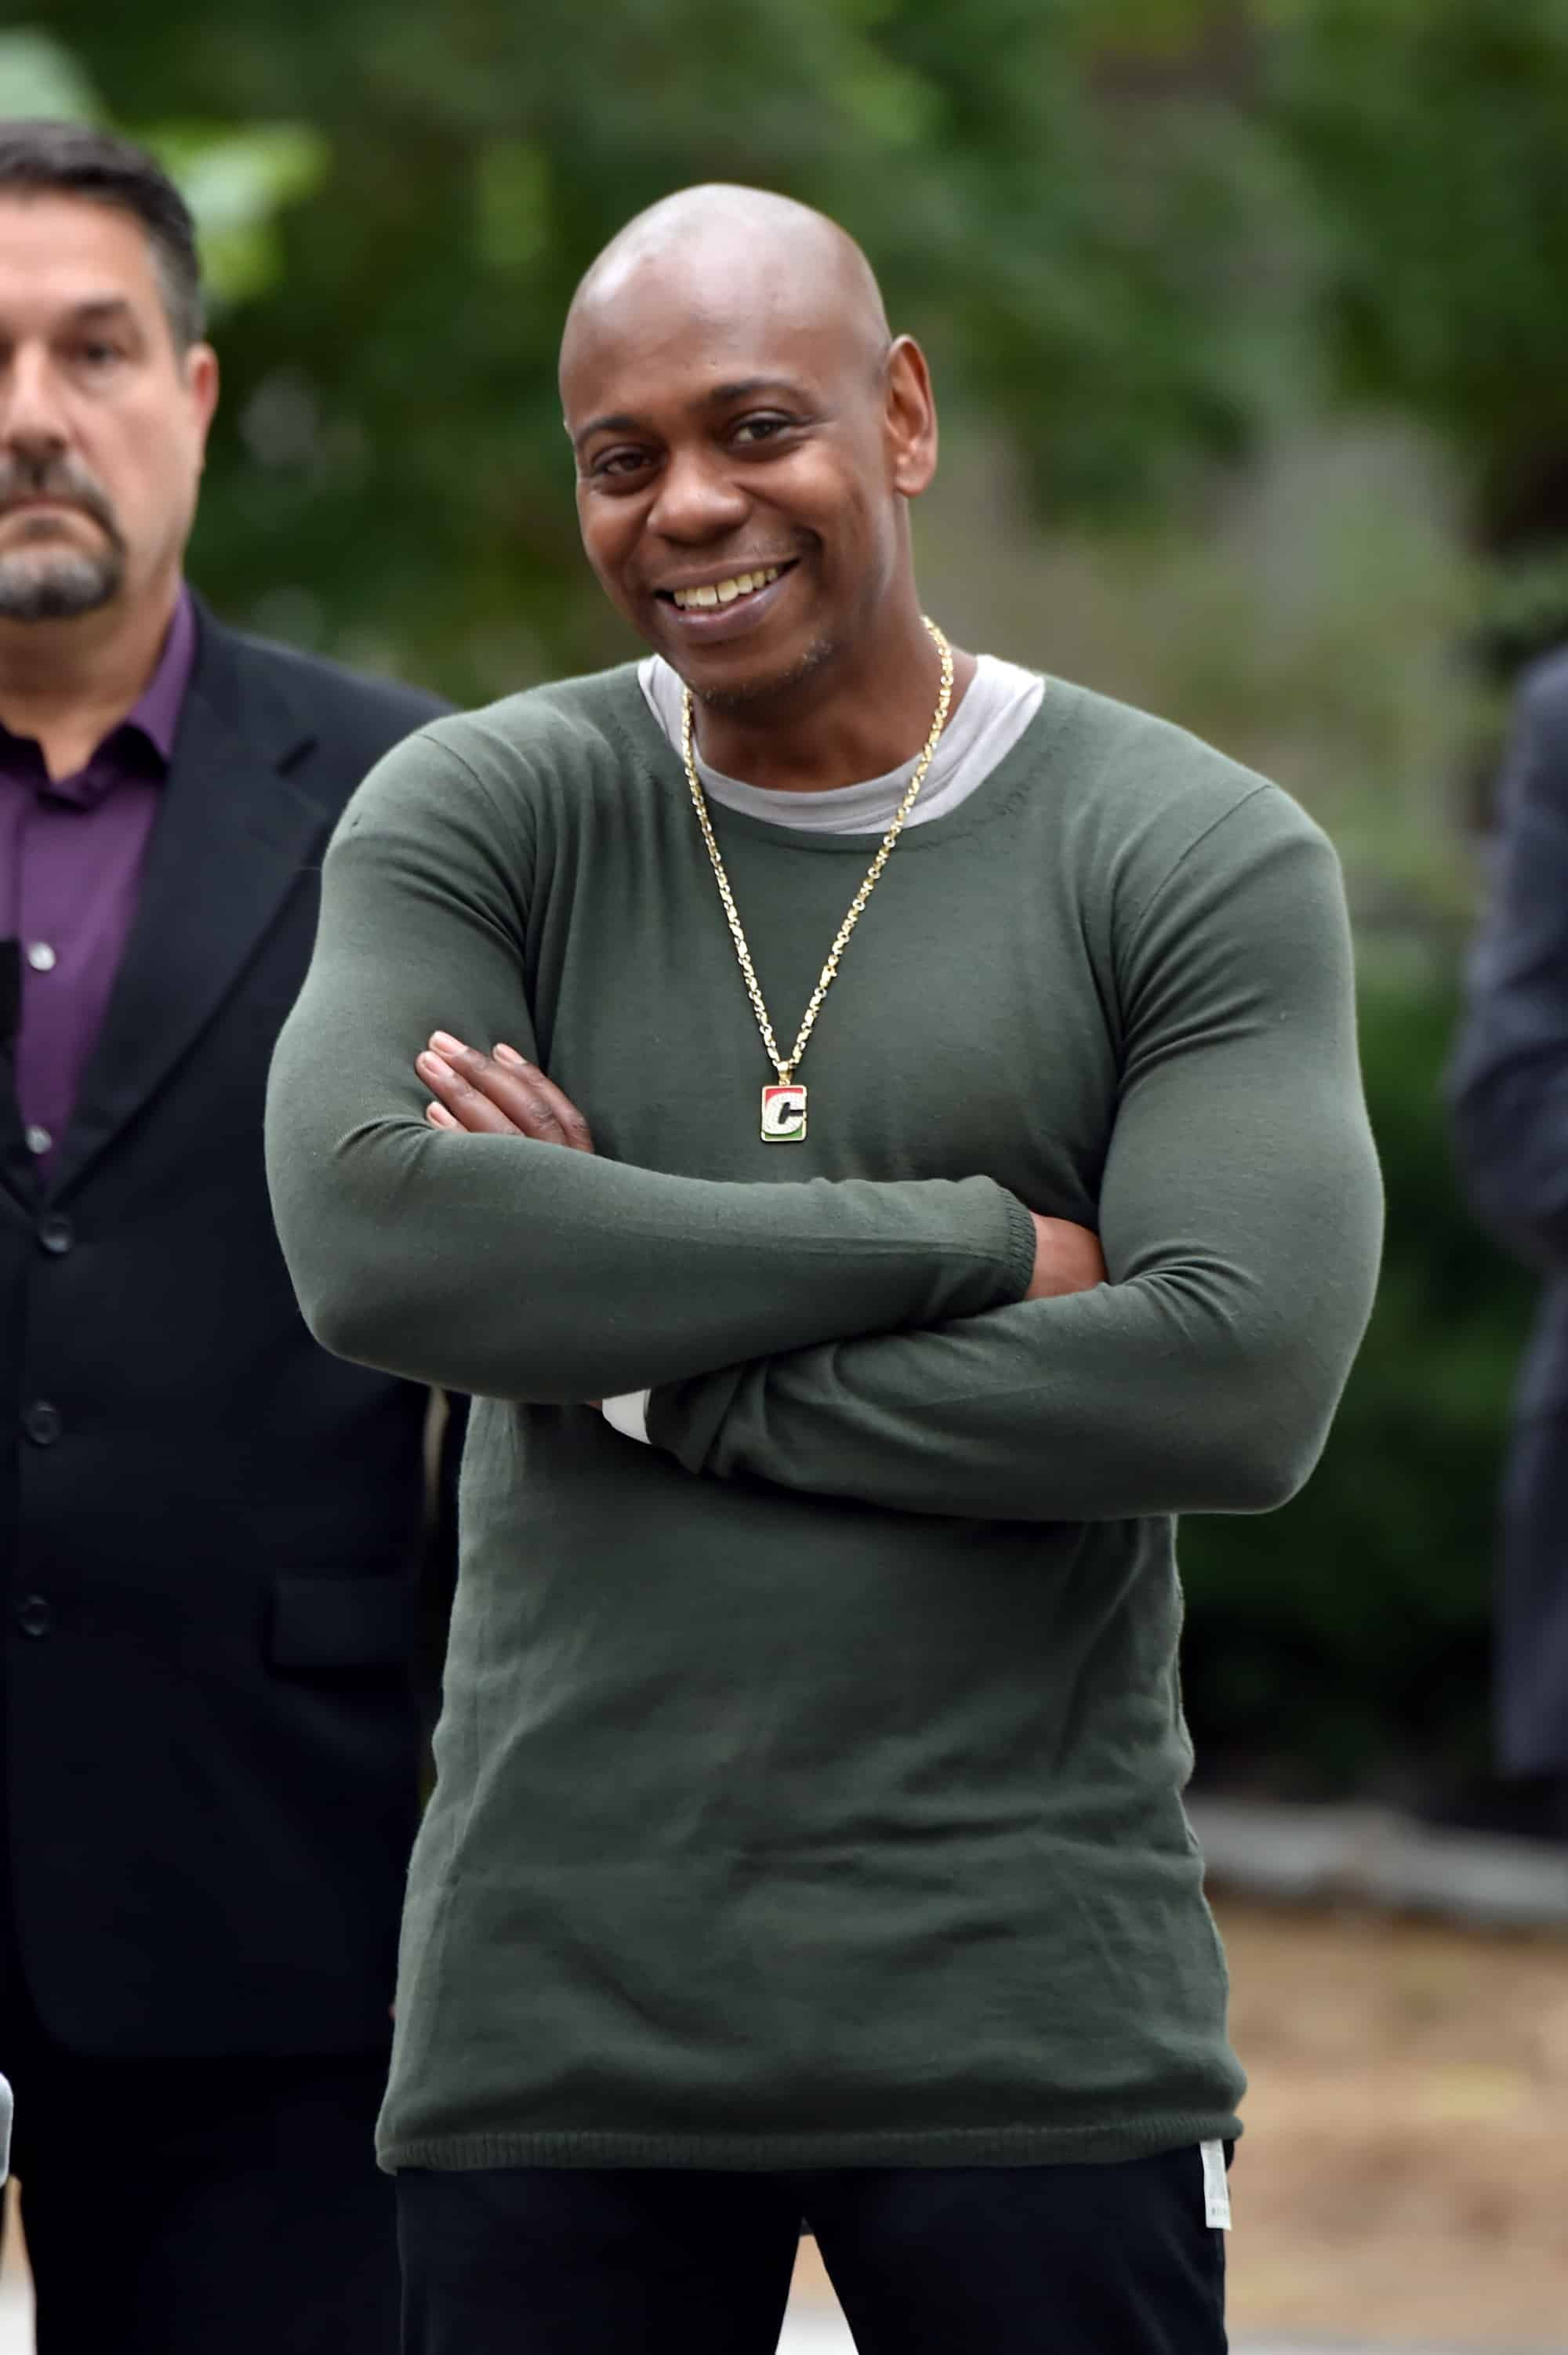 Dave Chappelle To Host Block Party In Dayton Ohio To